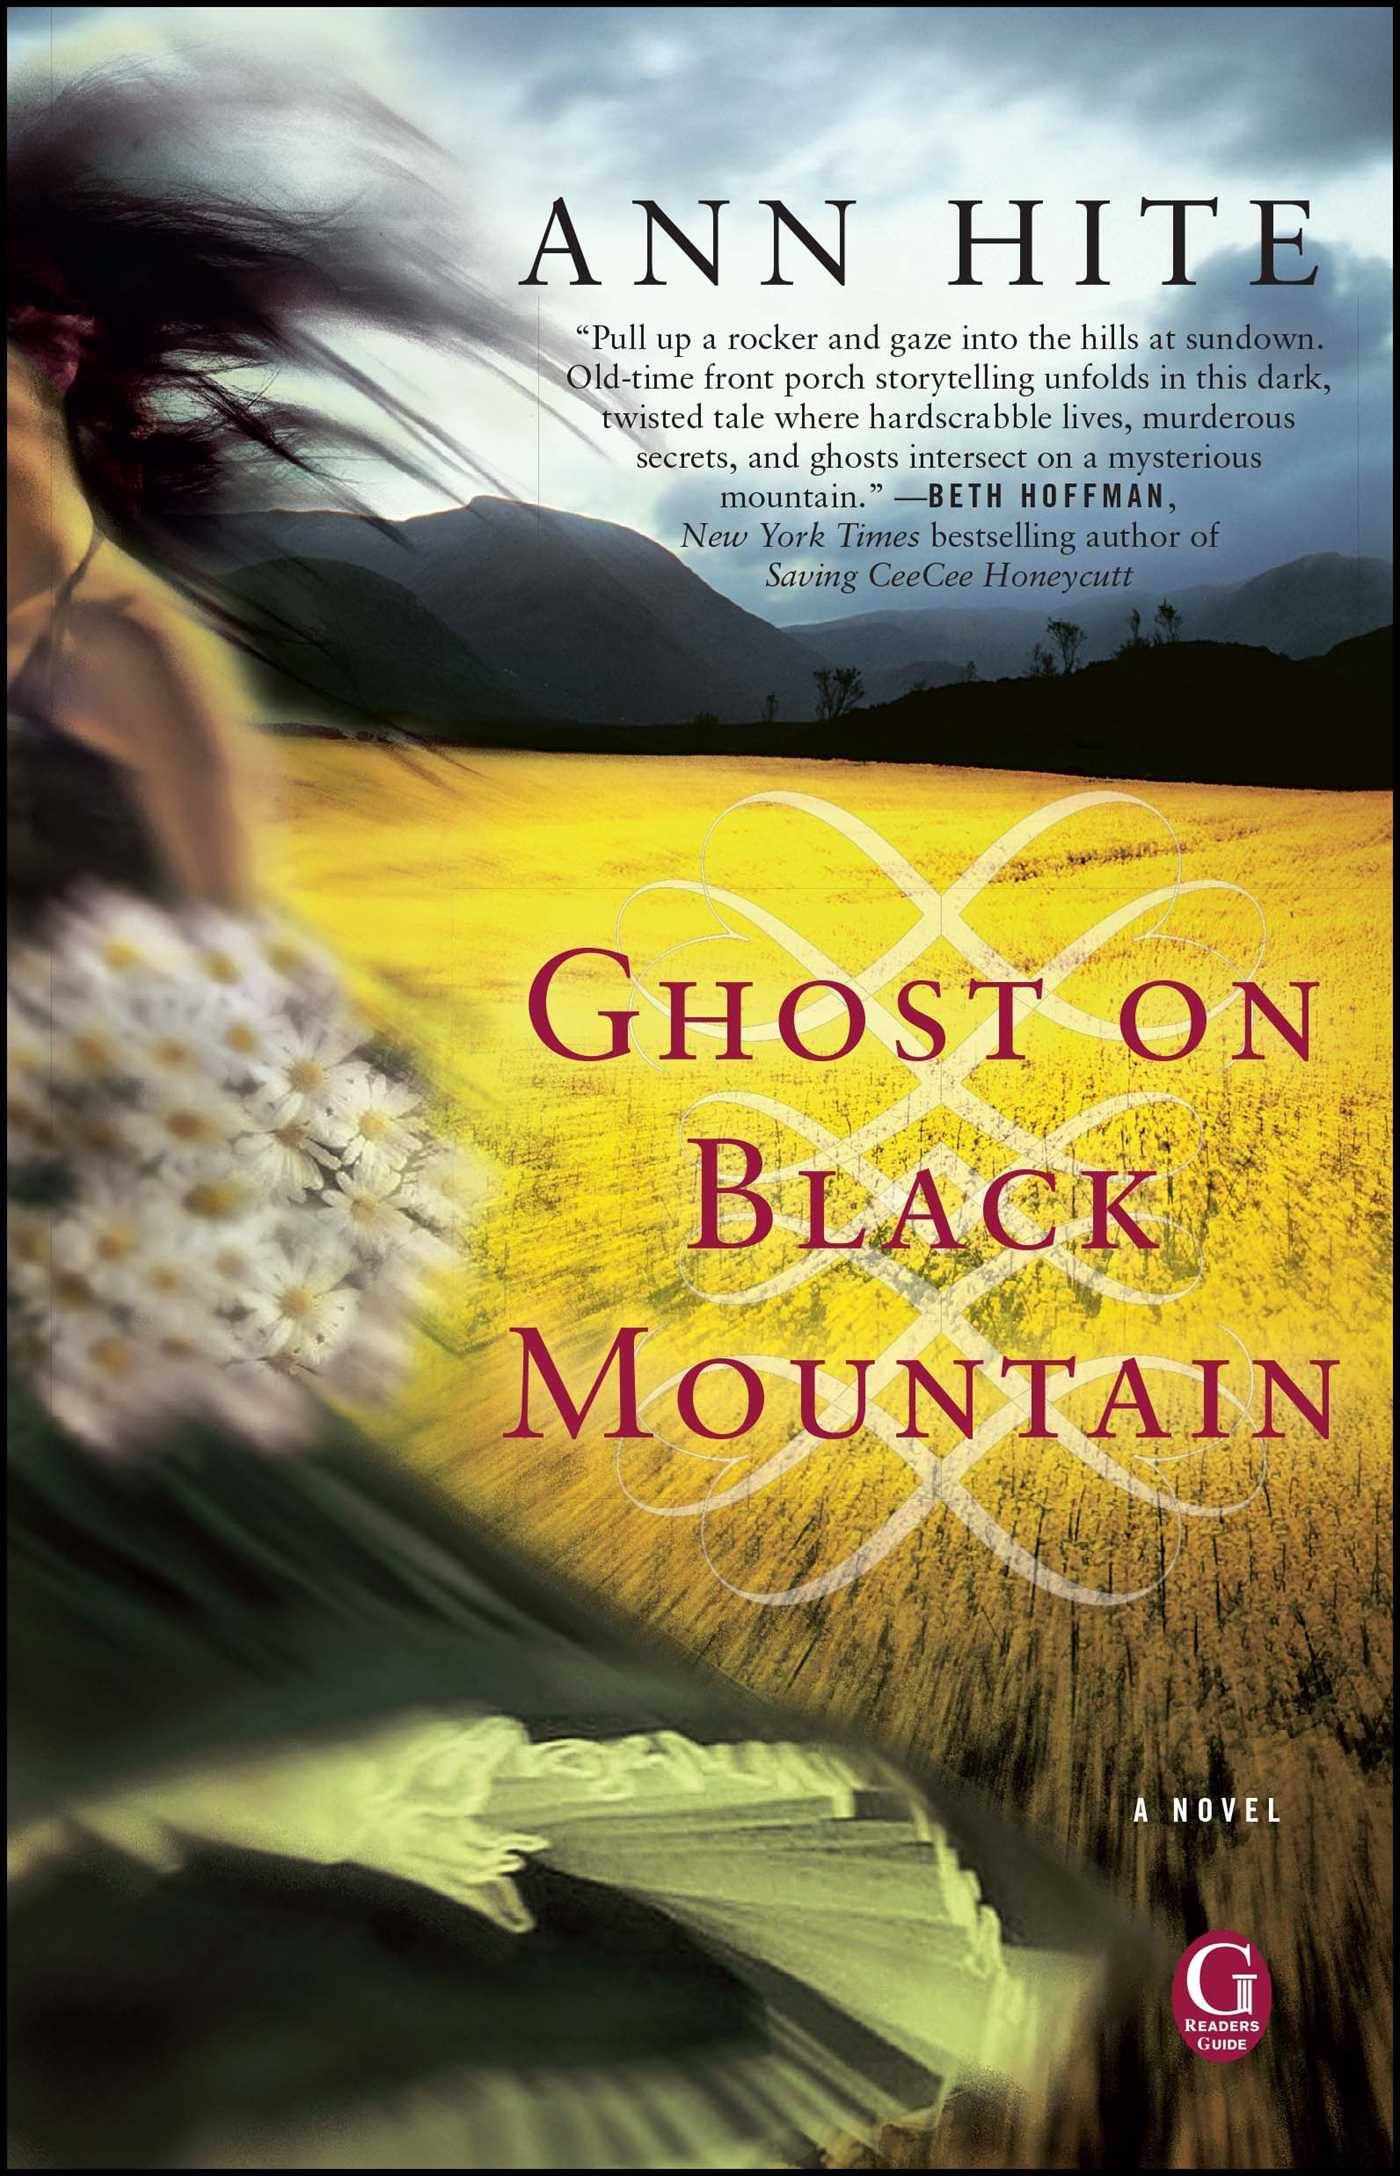 Ghost on black mountain 9781451606423 hr